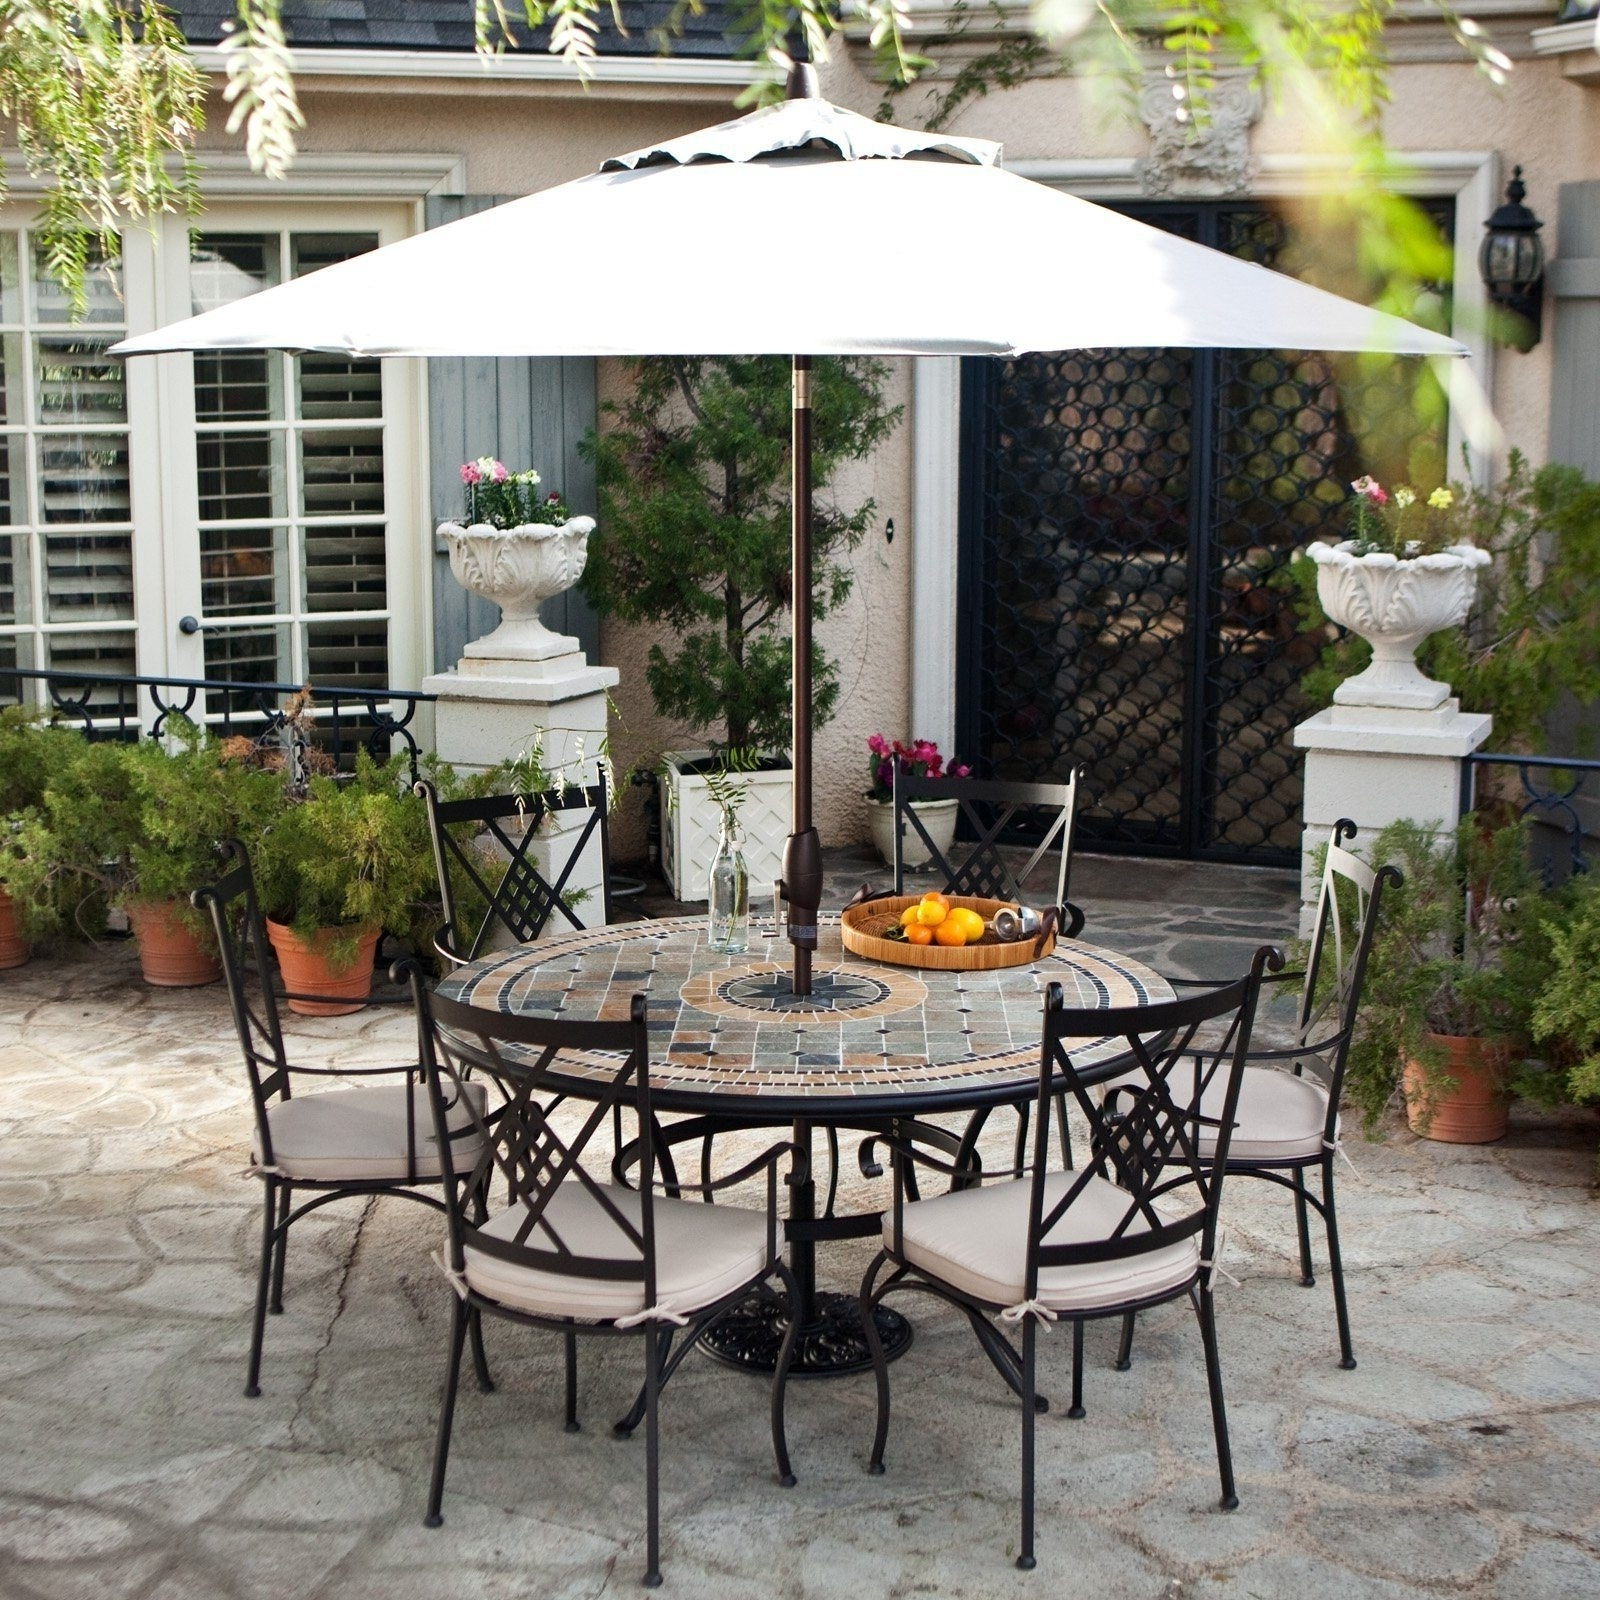 Garden: Enchanting Outdoor Patio Decor Ideas With Patio Umbrellas Within 2019 Small Patio Tables With Umbrellas (Gallery 13 of 20)